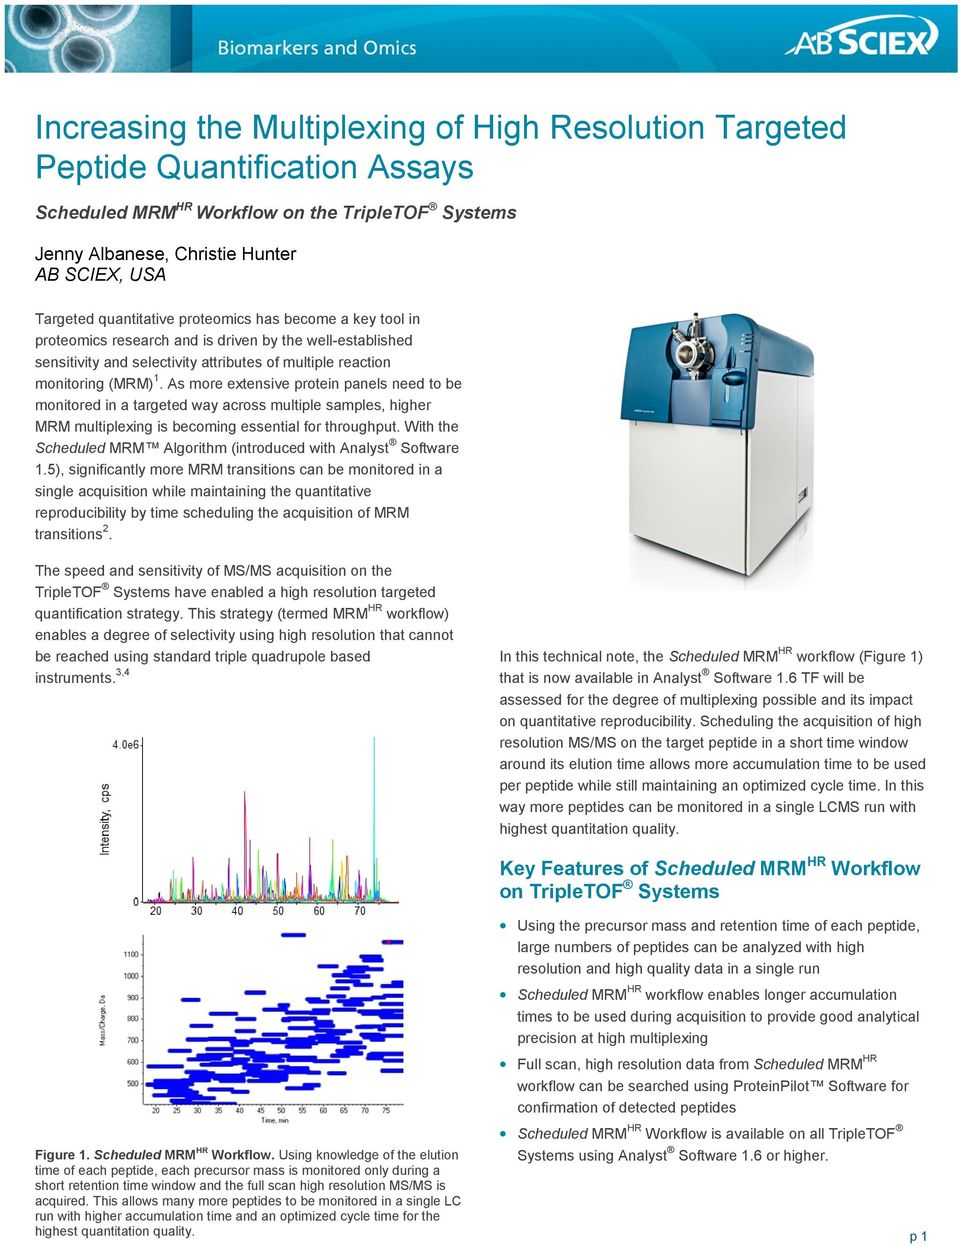 As more extensive protein panels need to be monitored in a targeted way across multiple samples, higher MRM multiplexing is becoming essential for throughput.